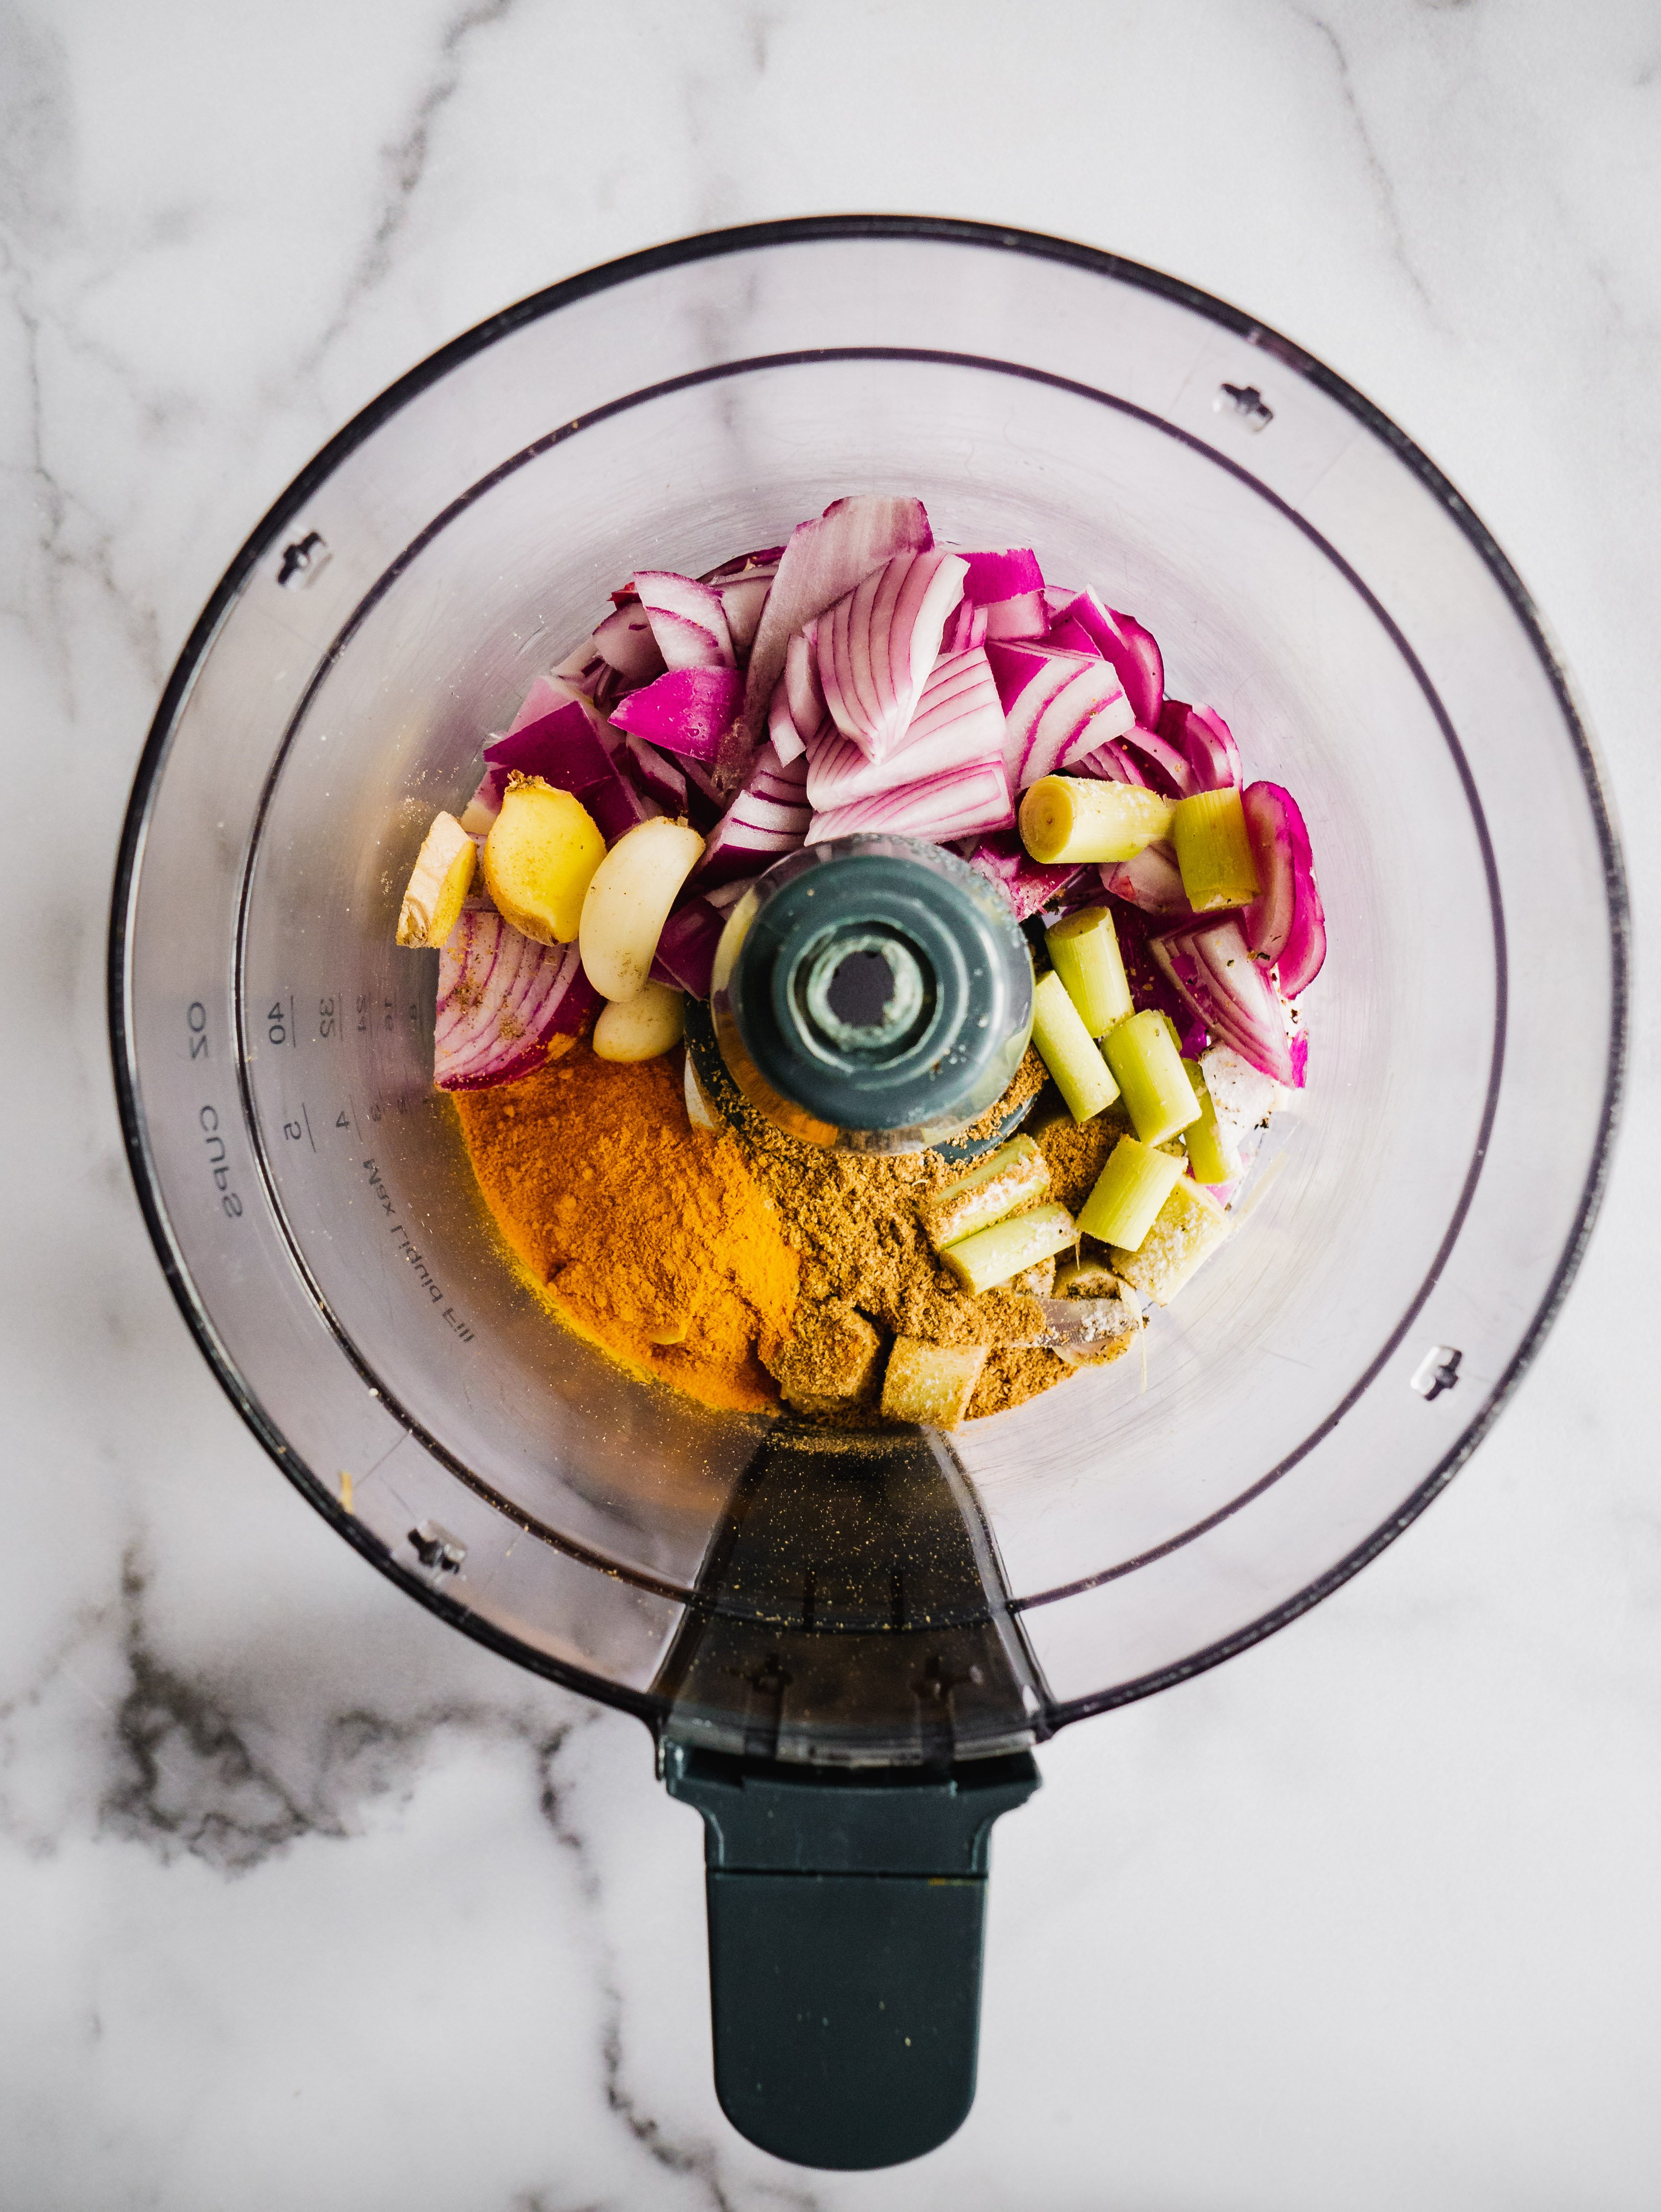 There is a food processor with all the ingredients for thai curry paste in it.